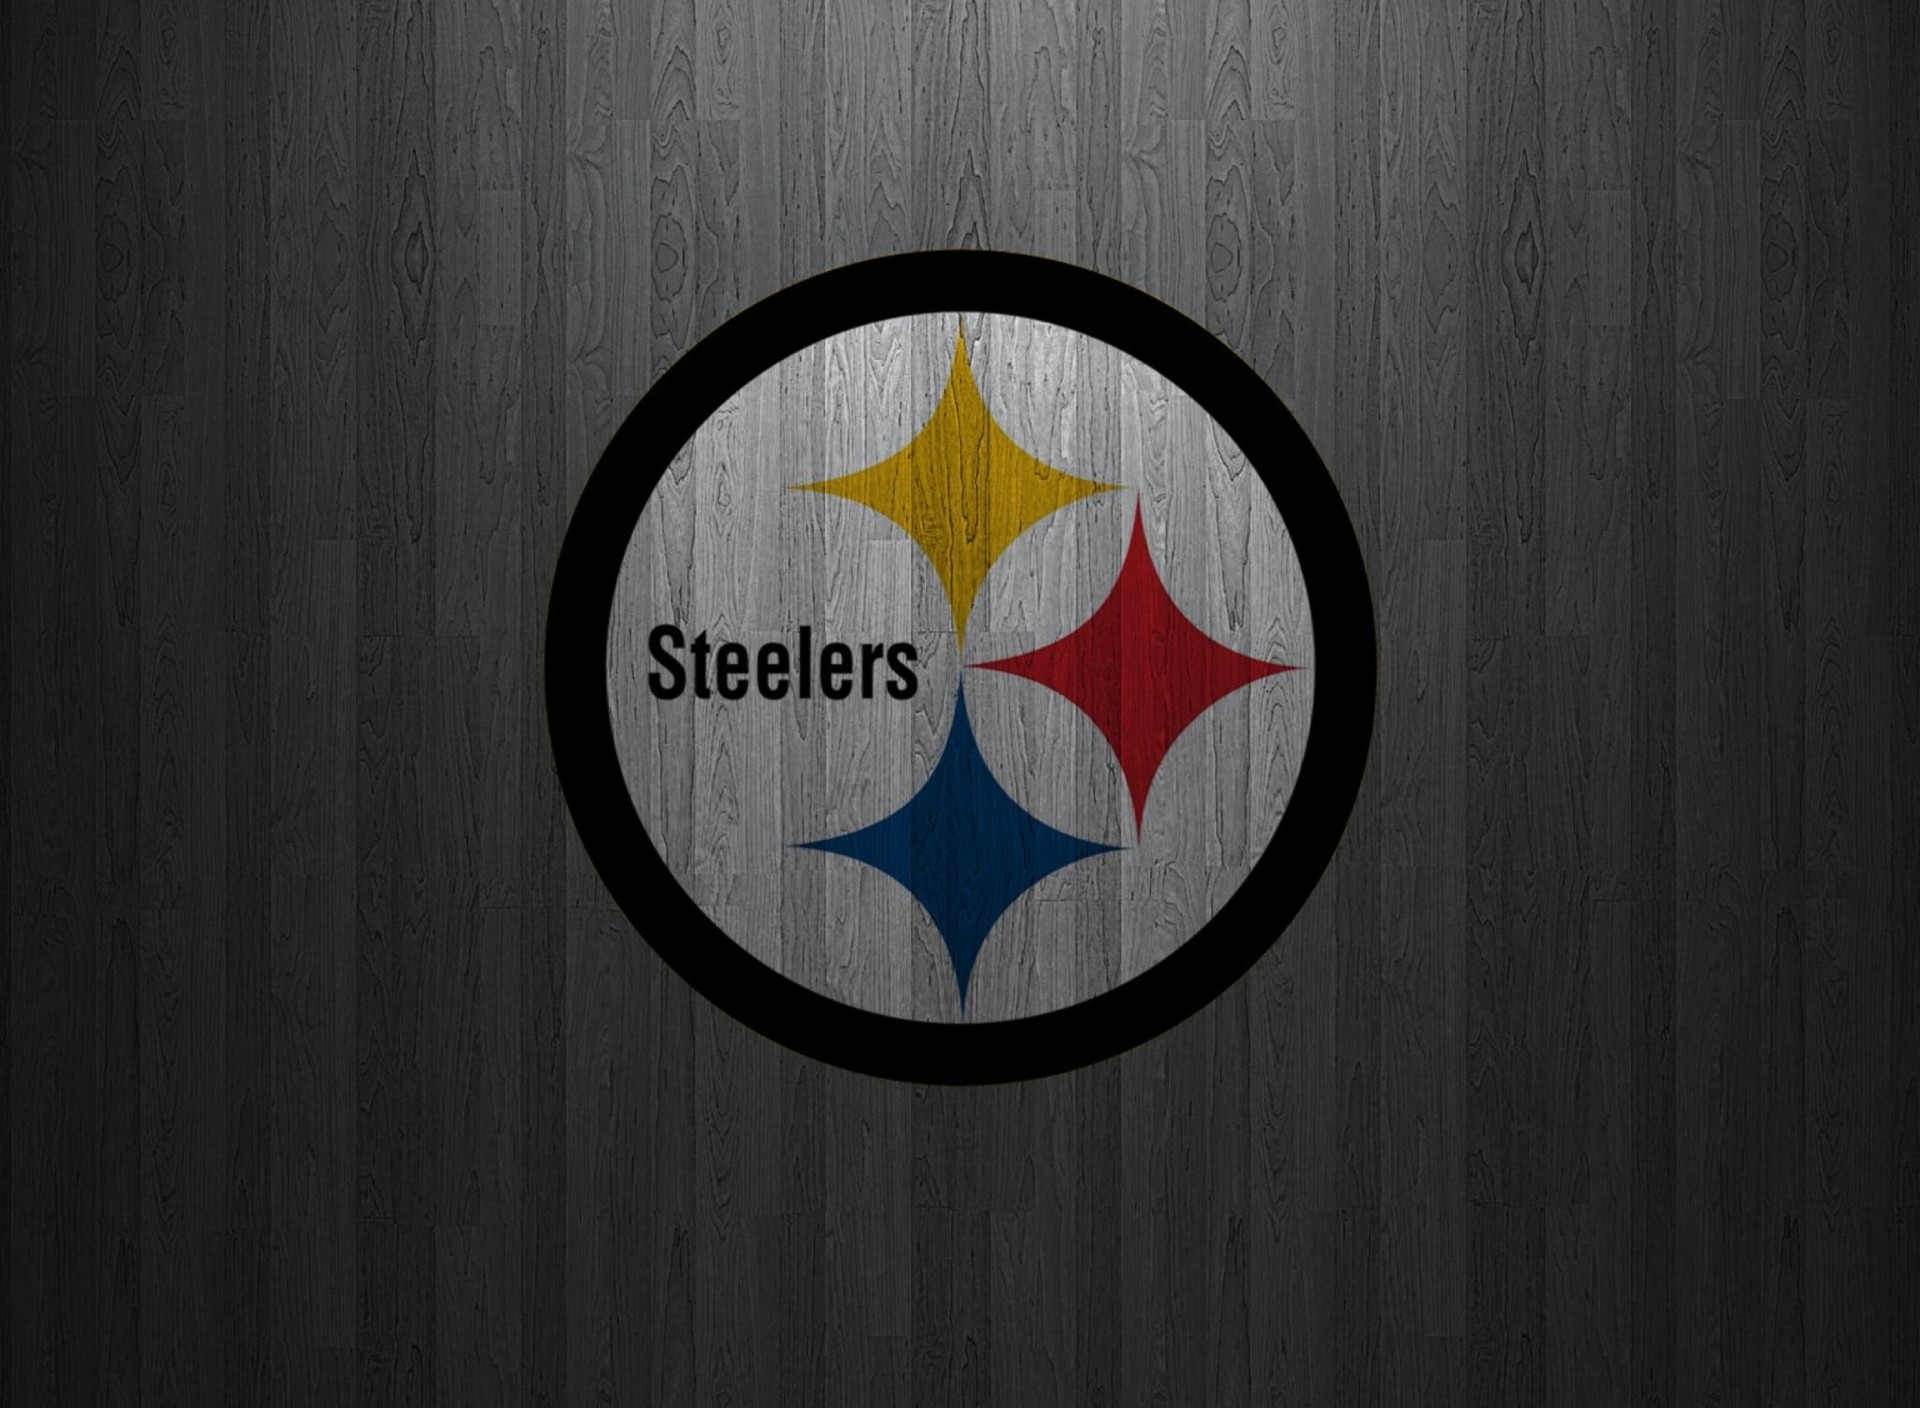 1920x1408 - Steelers Desktop 11